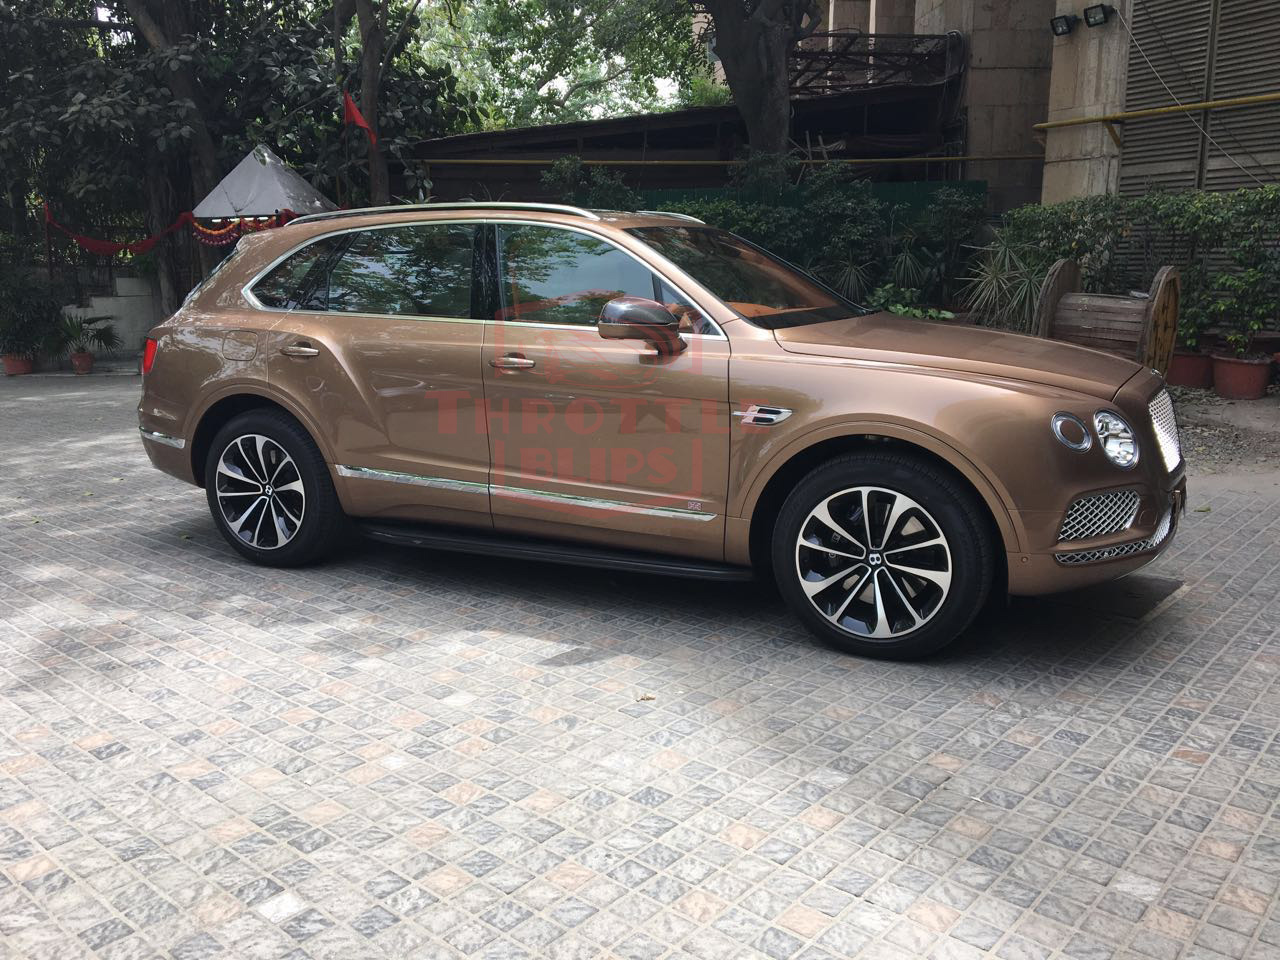 Bentley Bentayga in India